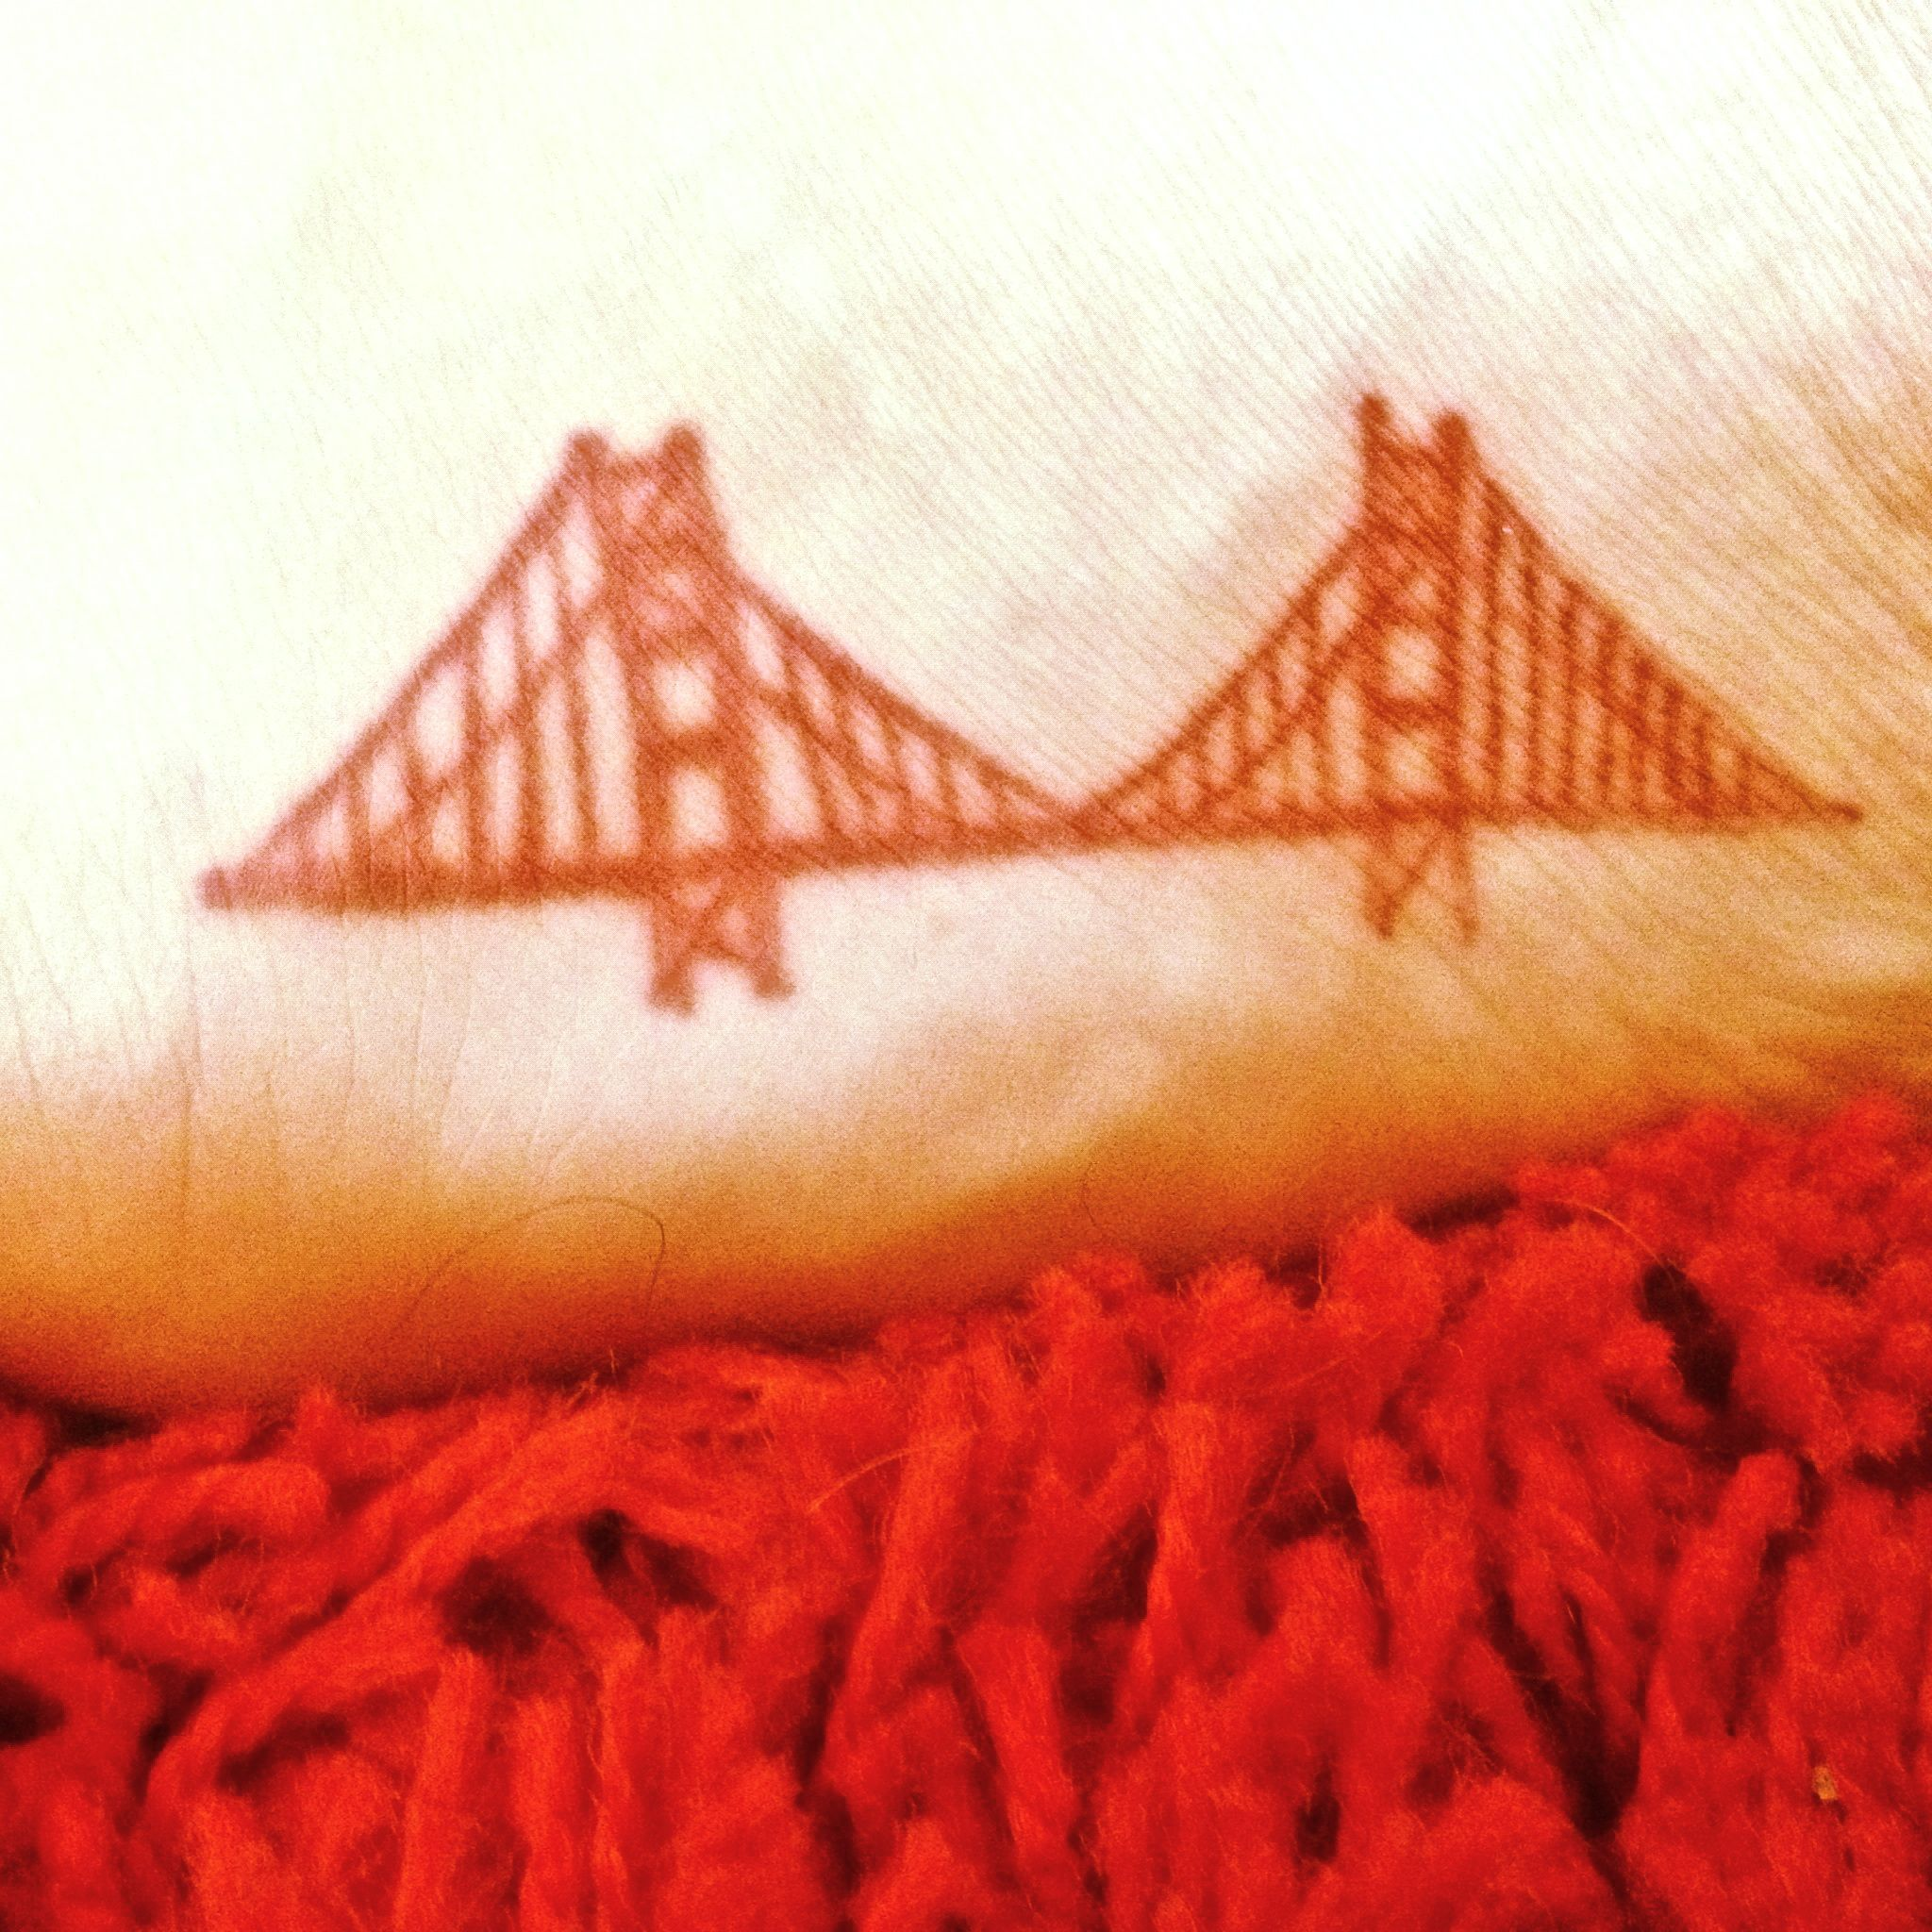 Printable coloring pages golden gate bridge - Golden Gate Bridge Tattoo On My Foot